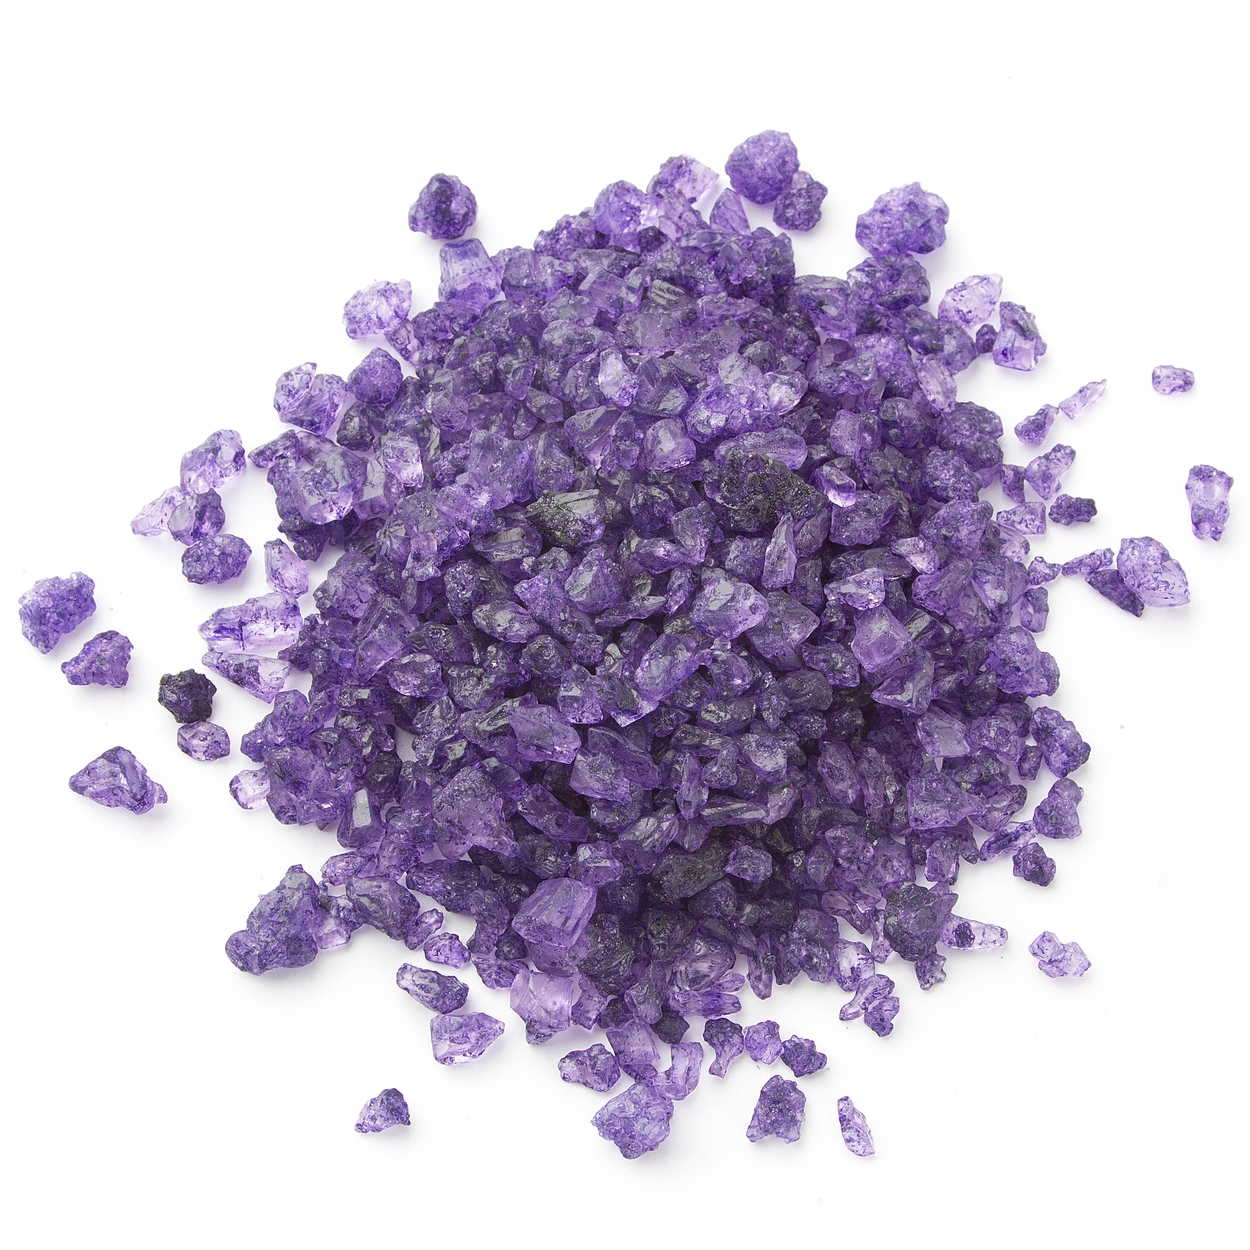 Purple Rock Candy Crystals Grape